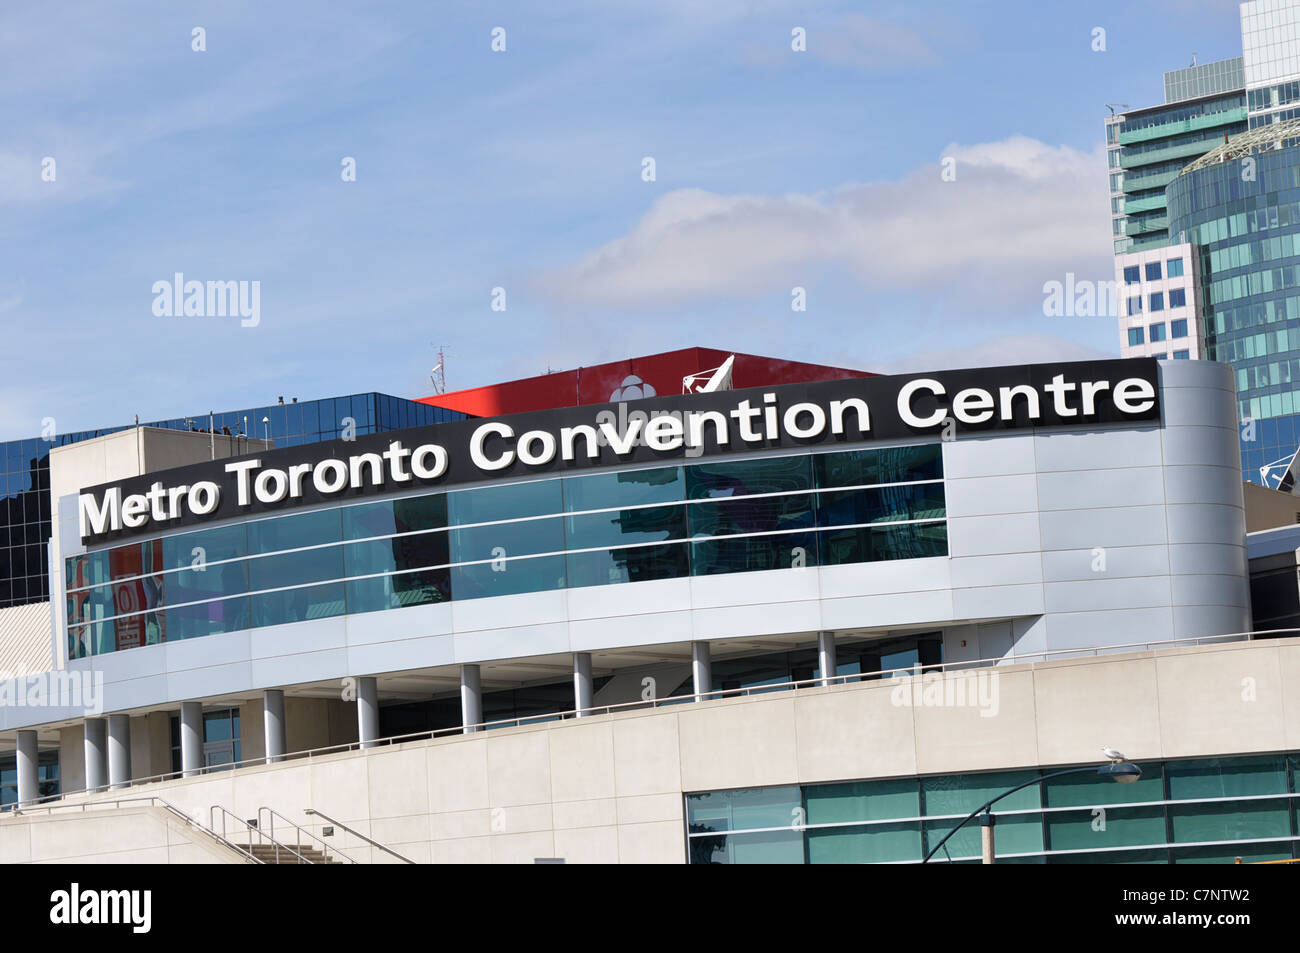 Metro Toronto Convention Centre - Stock Image